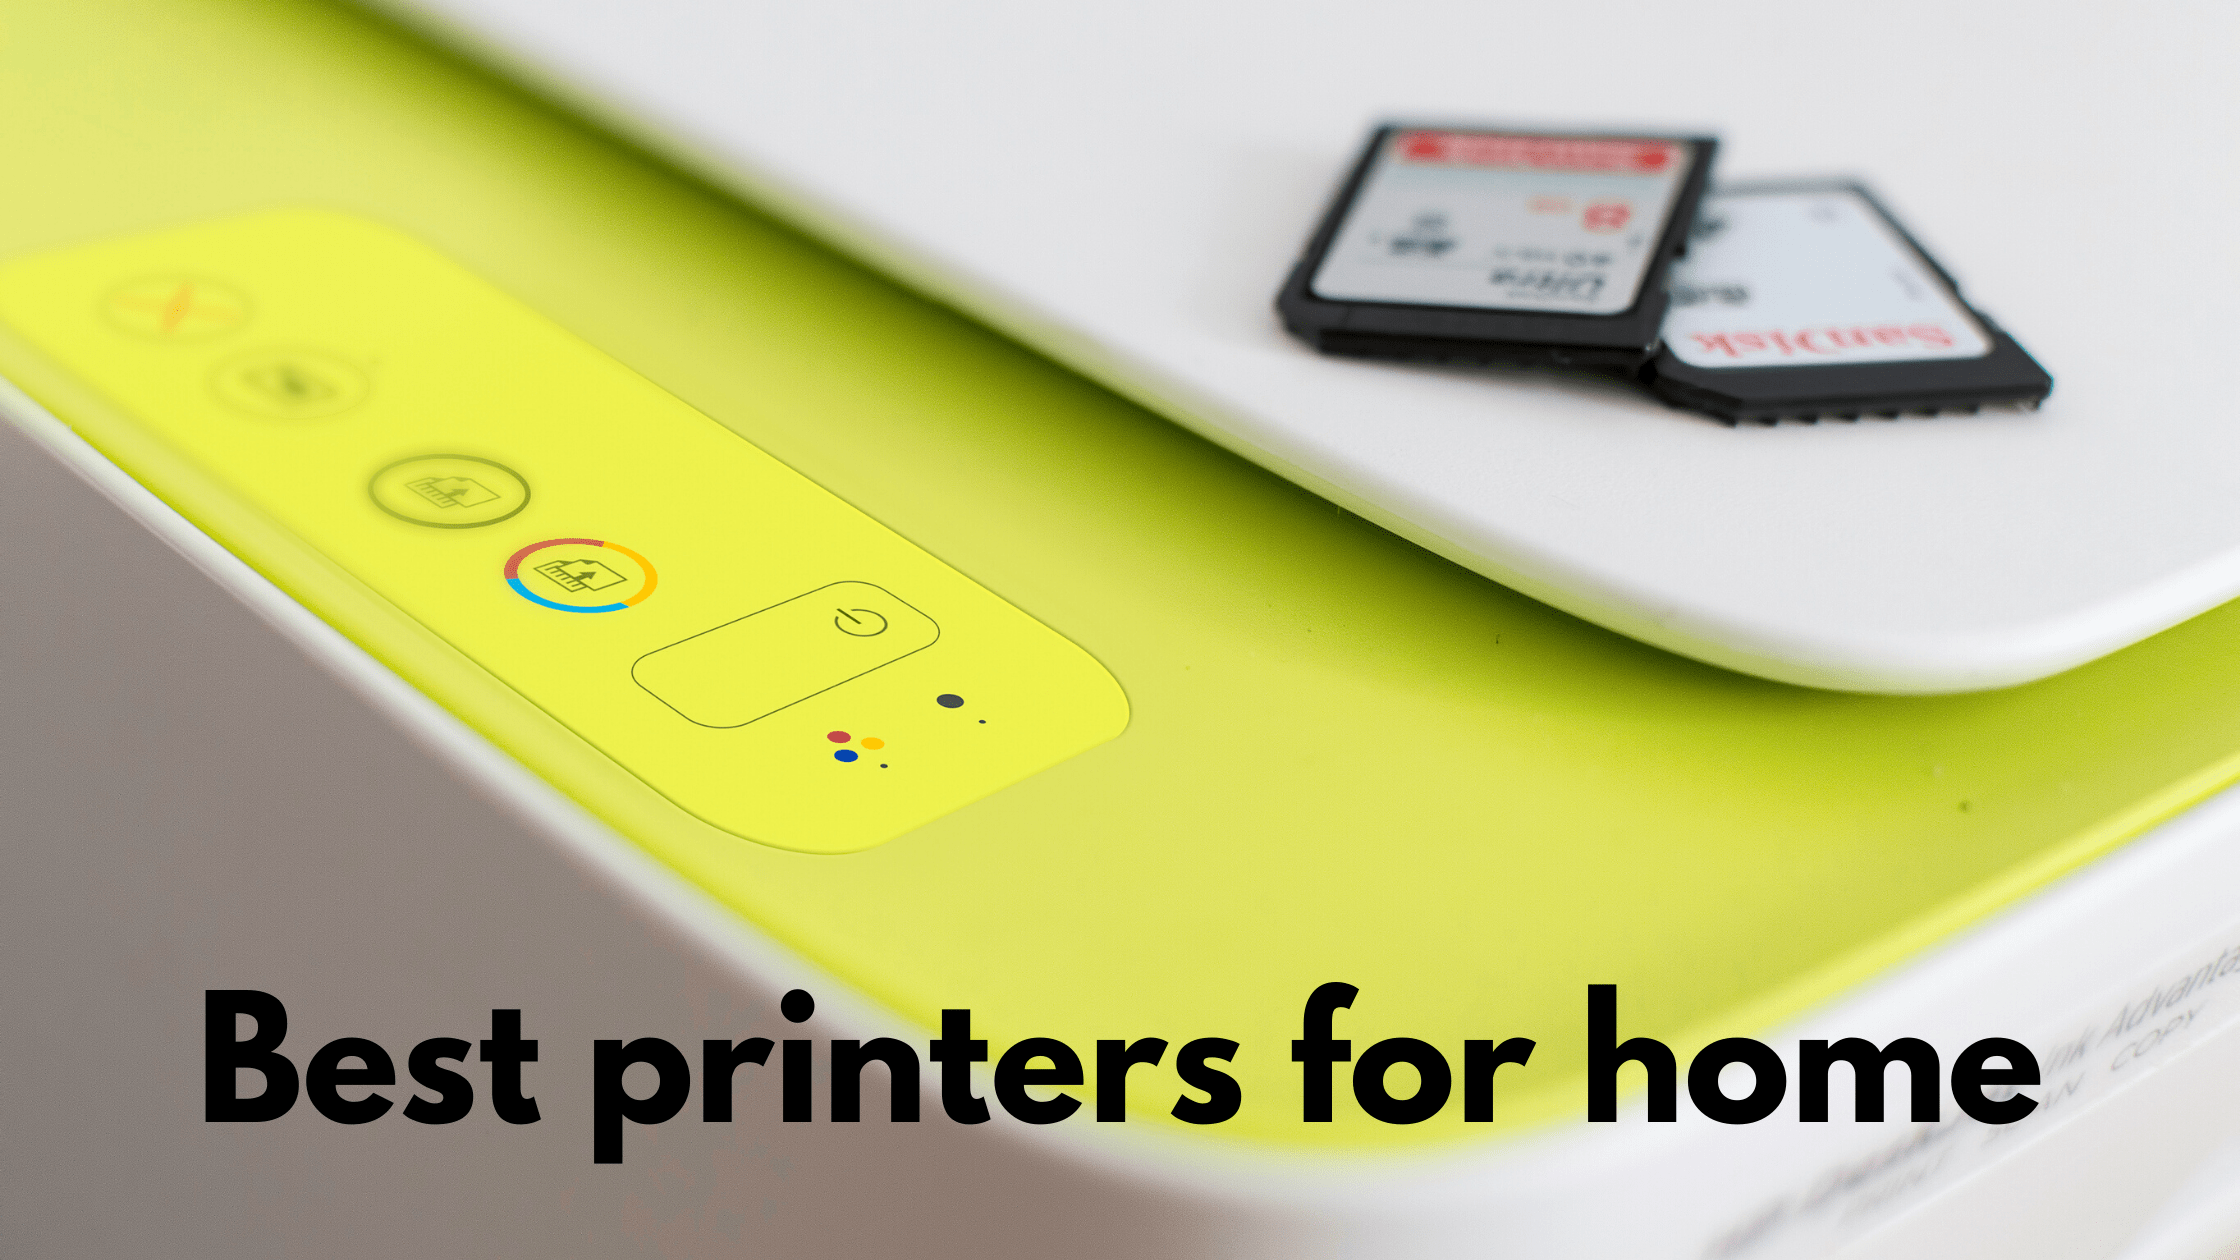 10 Best printers for home use in India